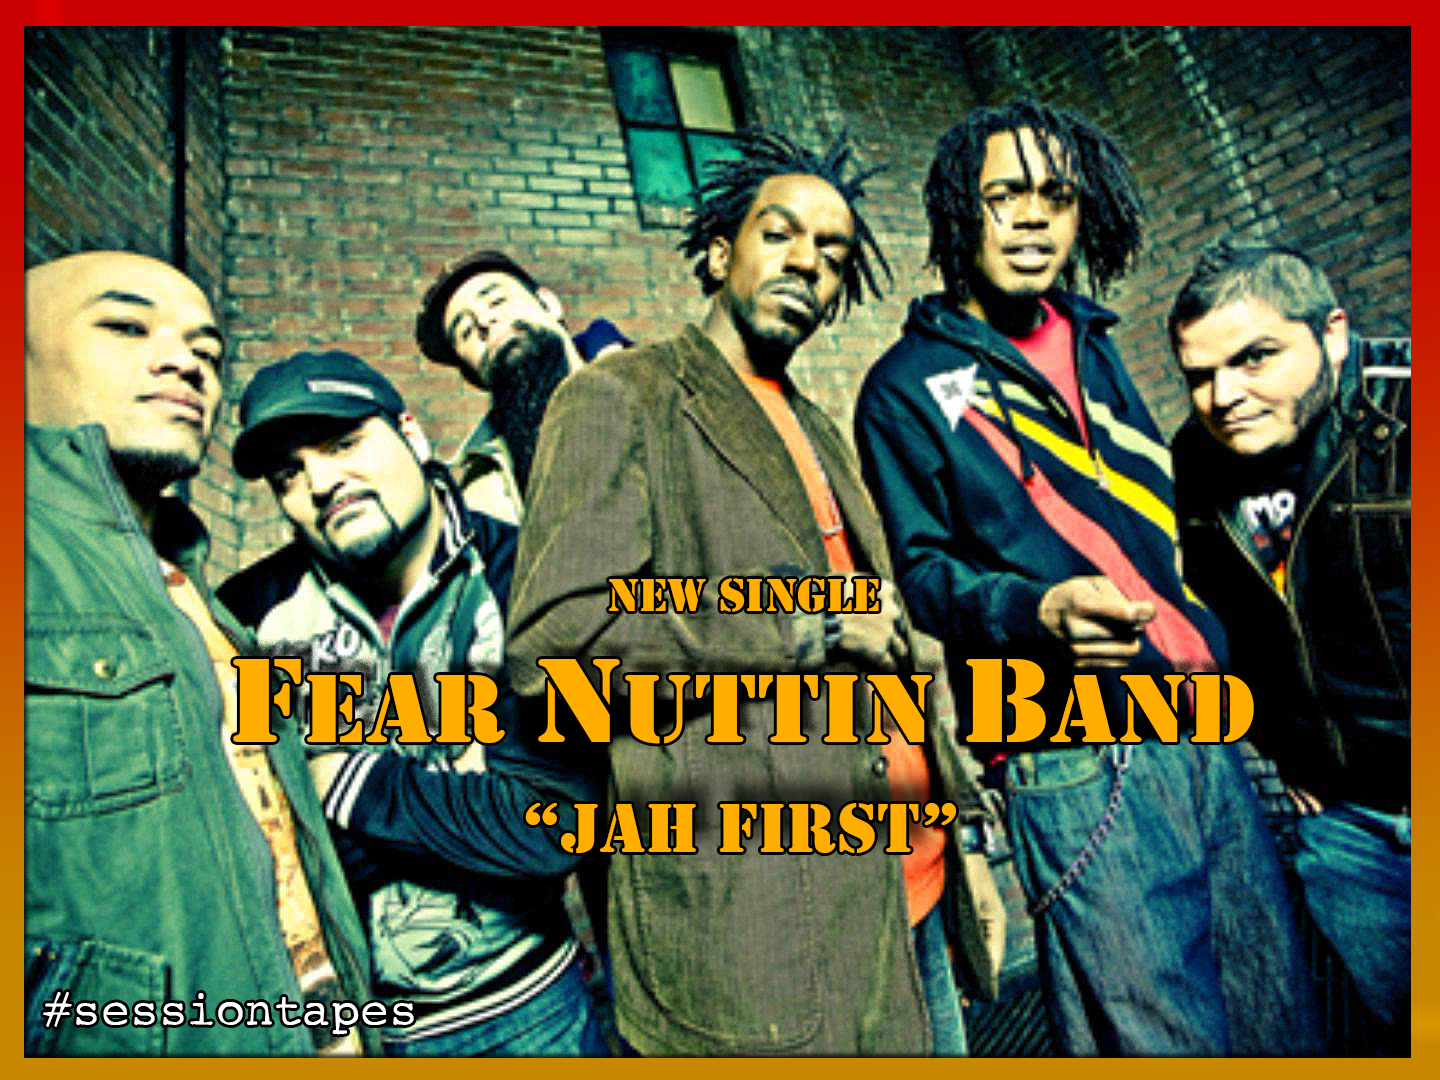 Fear Nuttin Band – Jah First (new singe)